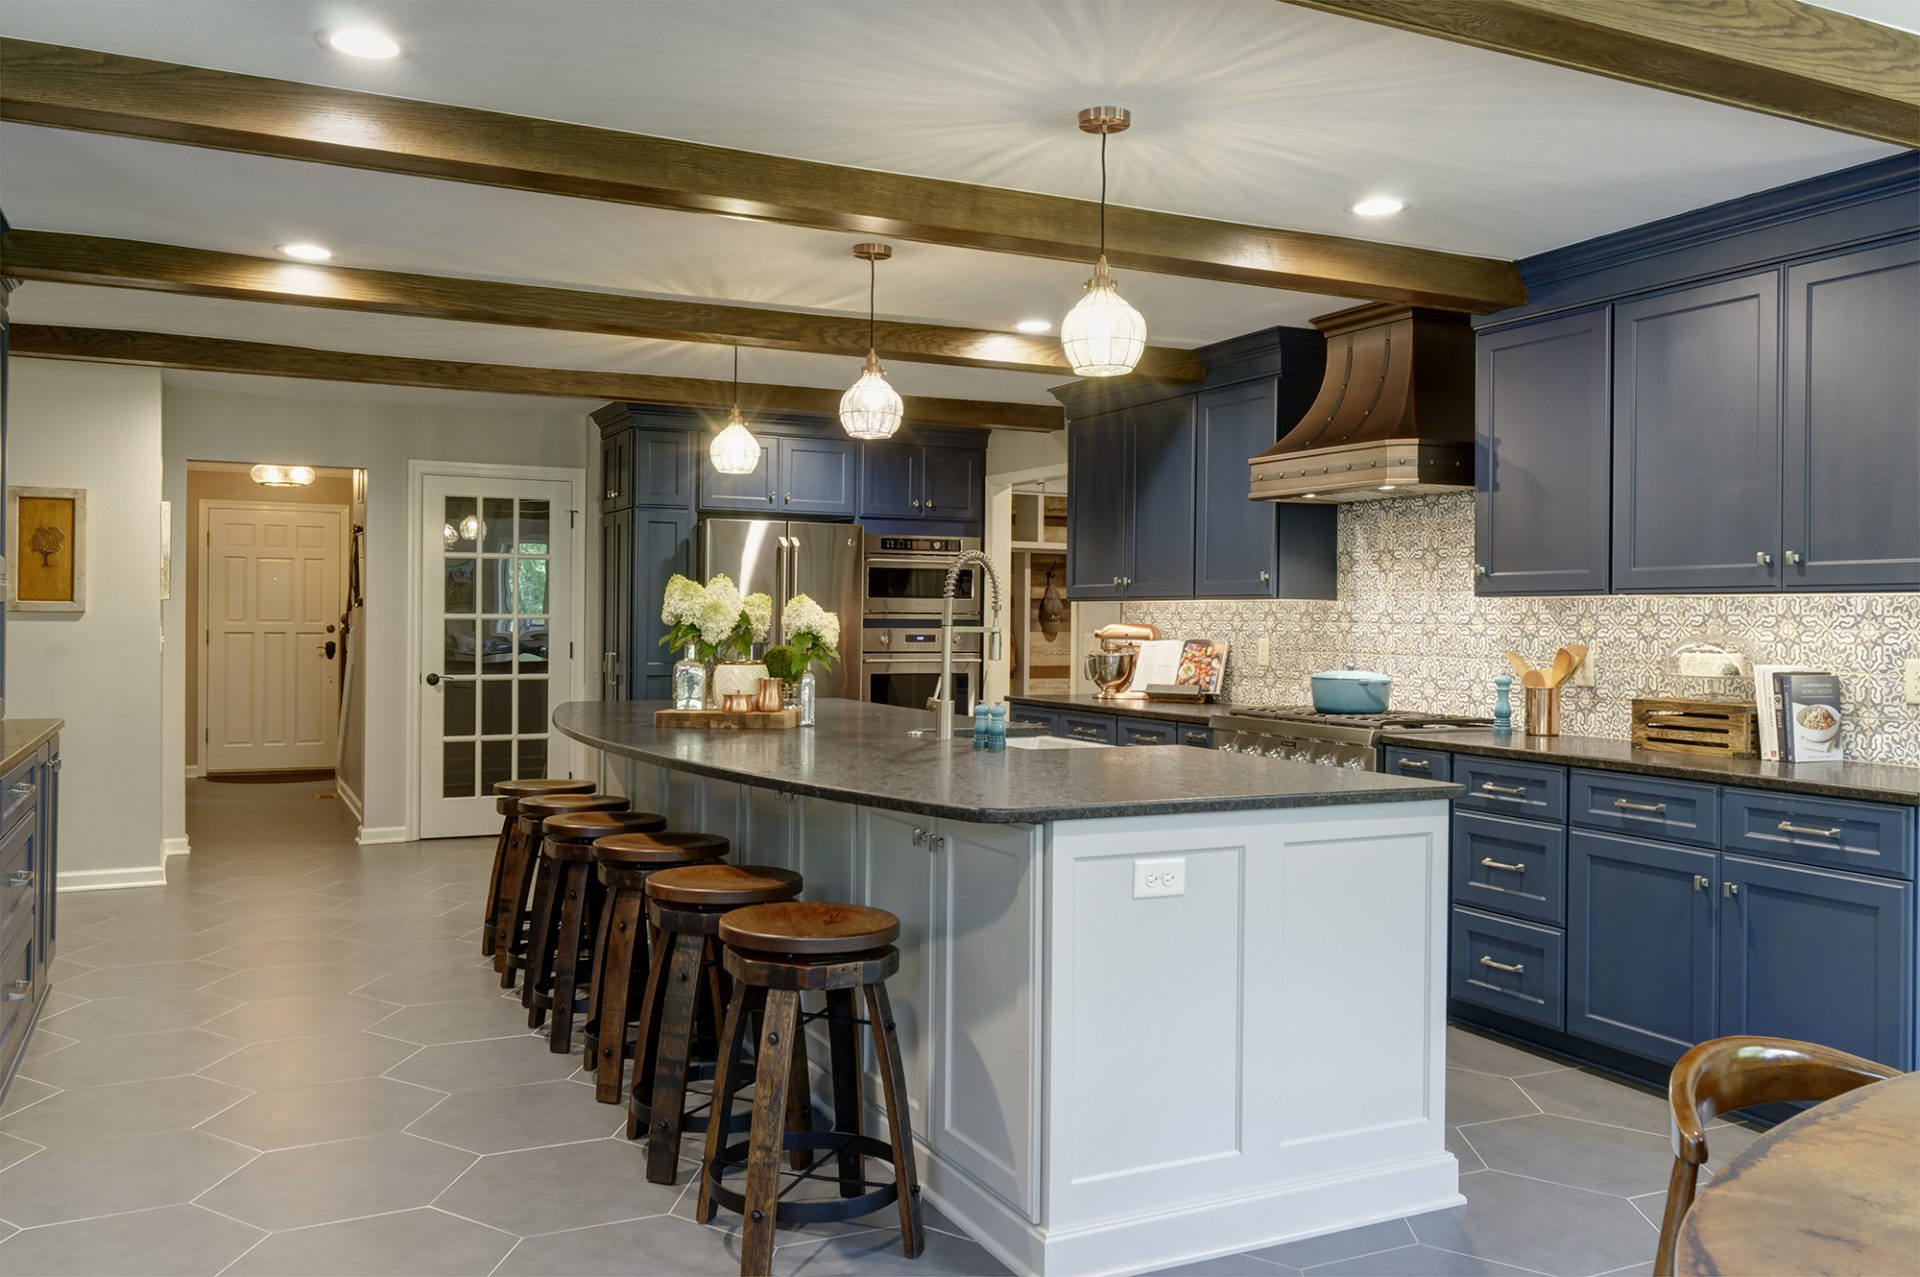 Kitchen remodel, Powell, Dave Fox, Remodel, over sized island, two-tone cabinets, concrete counter, wood beams, apron sink